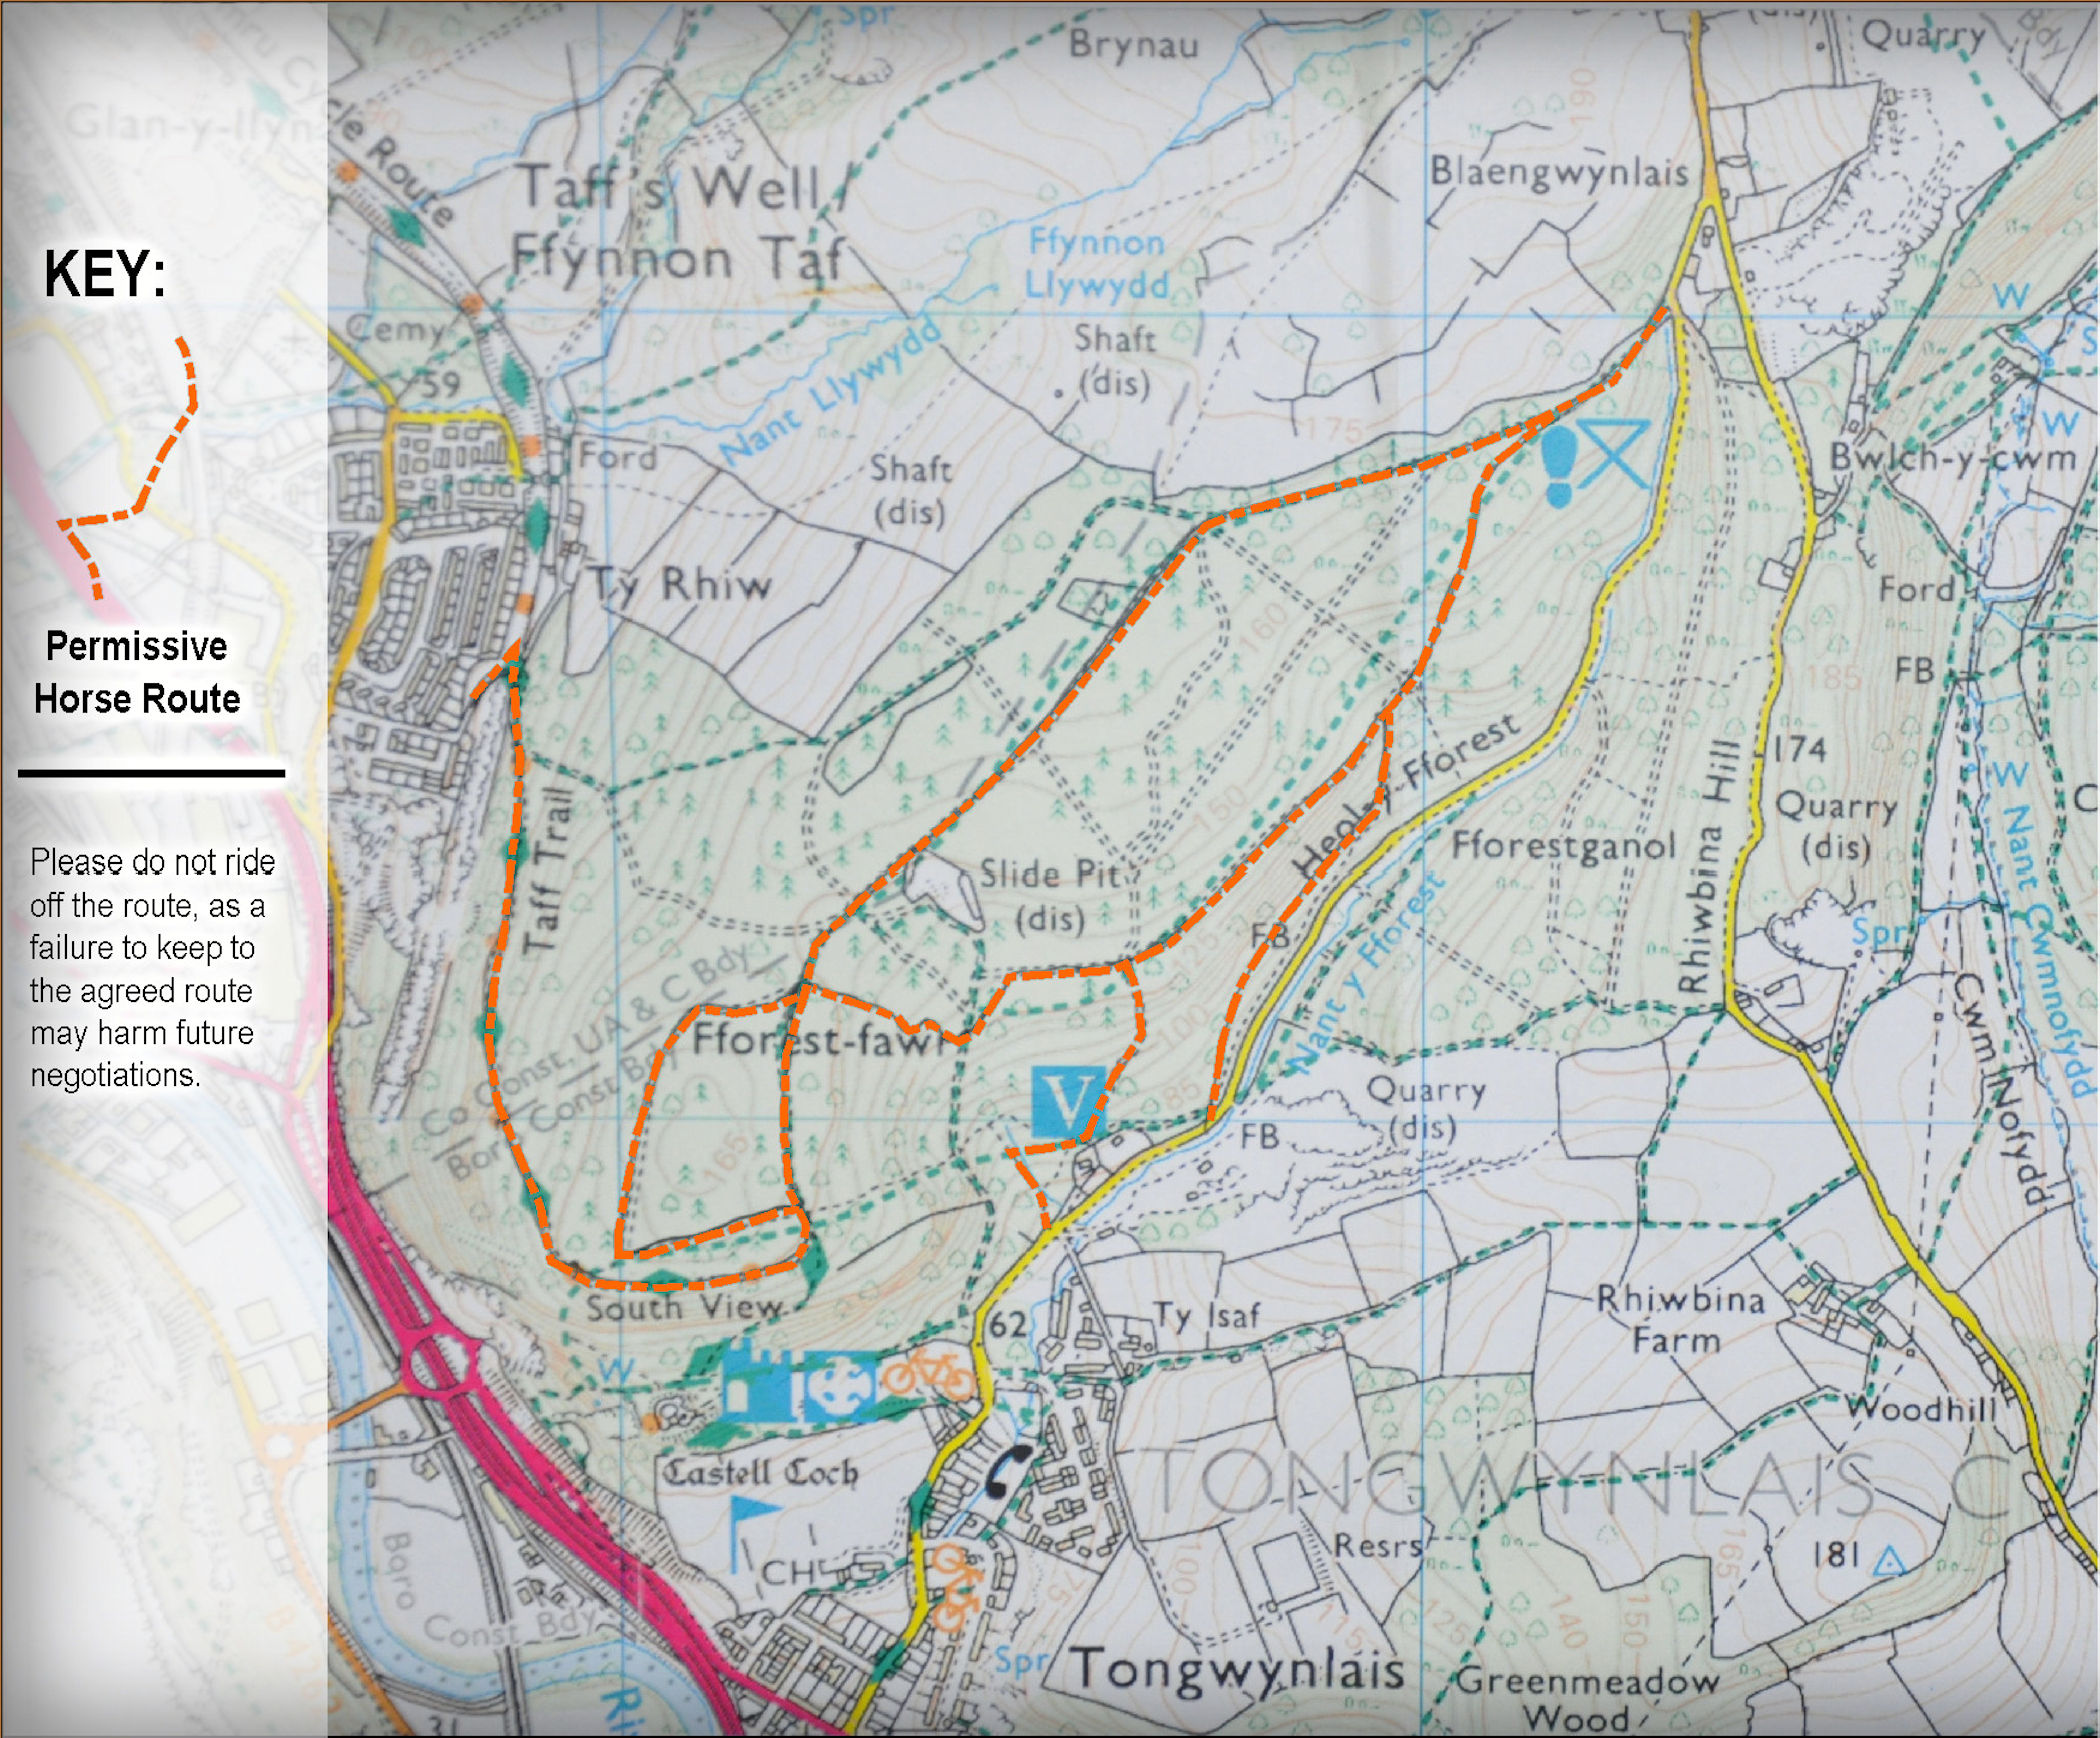 Fforest Fawr map with permissive Horse Routes. Please do not ride off these routes.